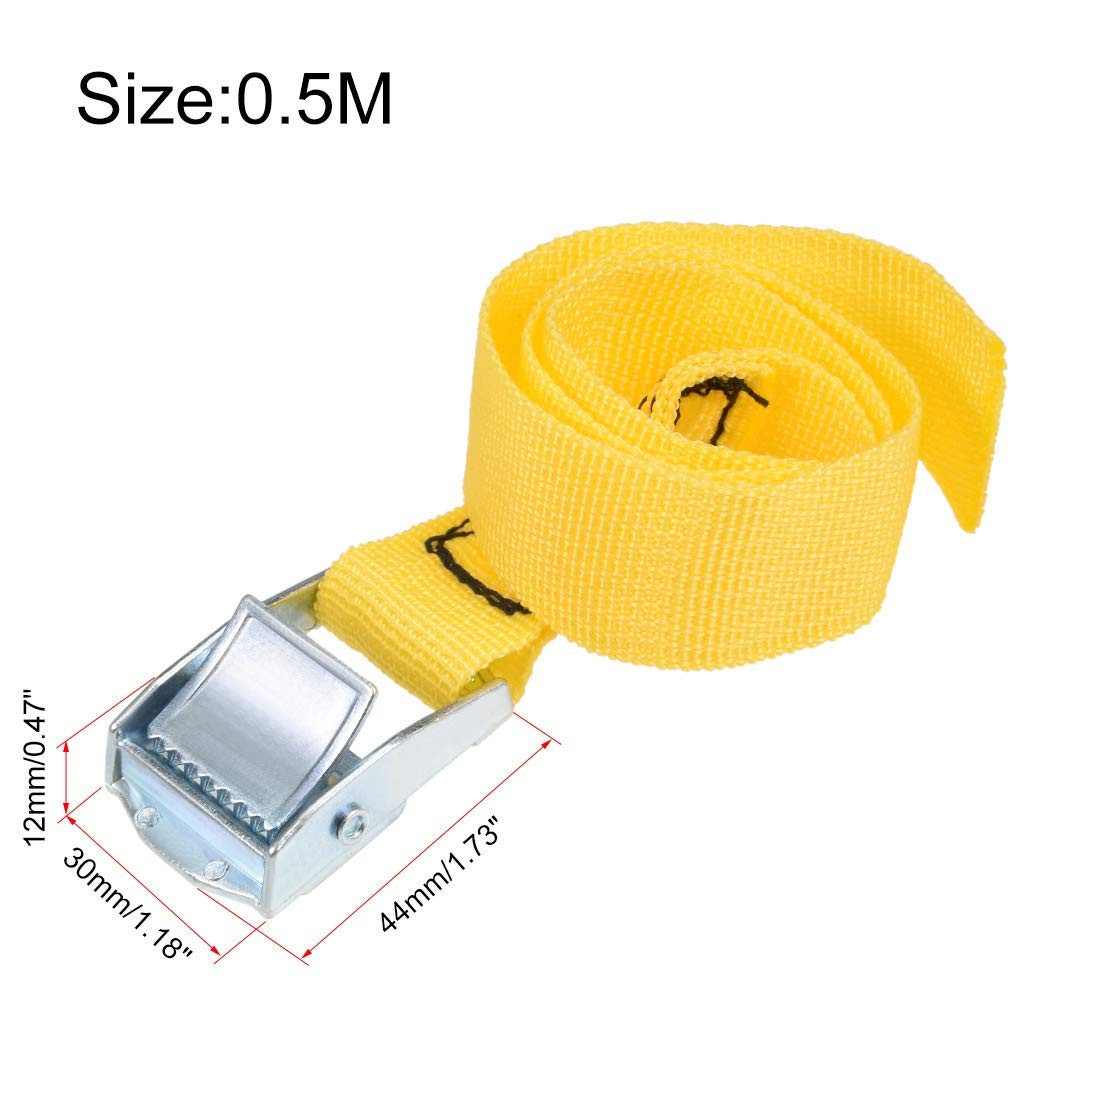 0.5M x 25mm Tie Down Strap Cargo Tie Down Straps with cam Lock Buckle 250Kg Workload 2 Pieces Yellow